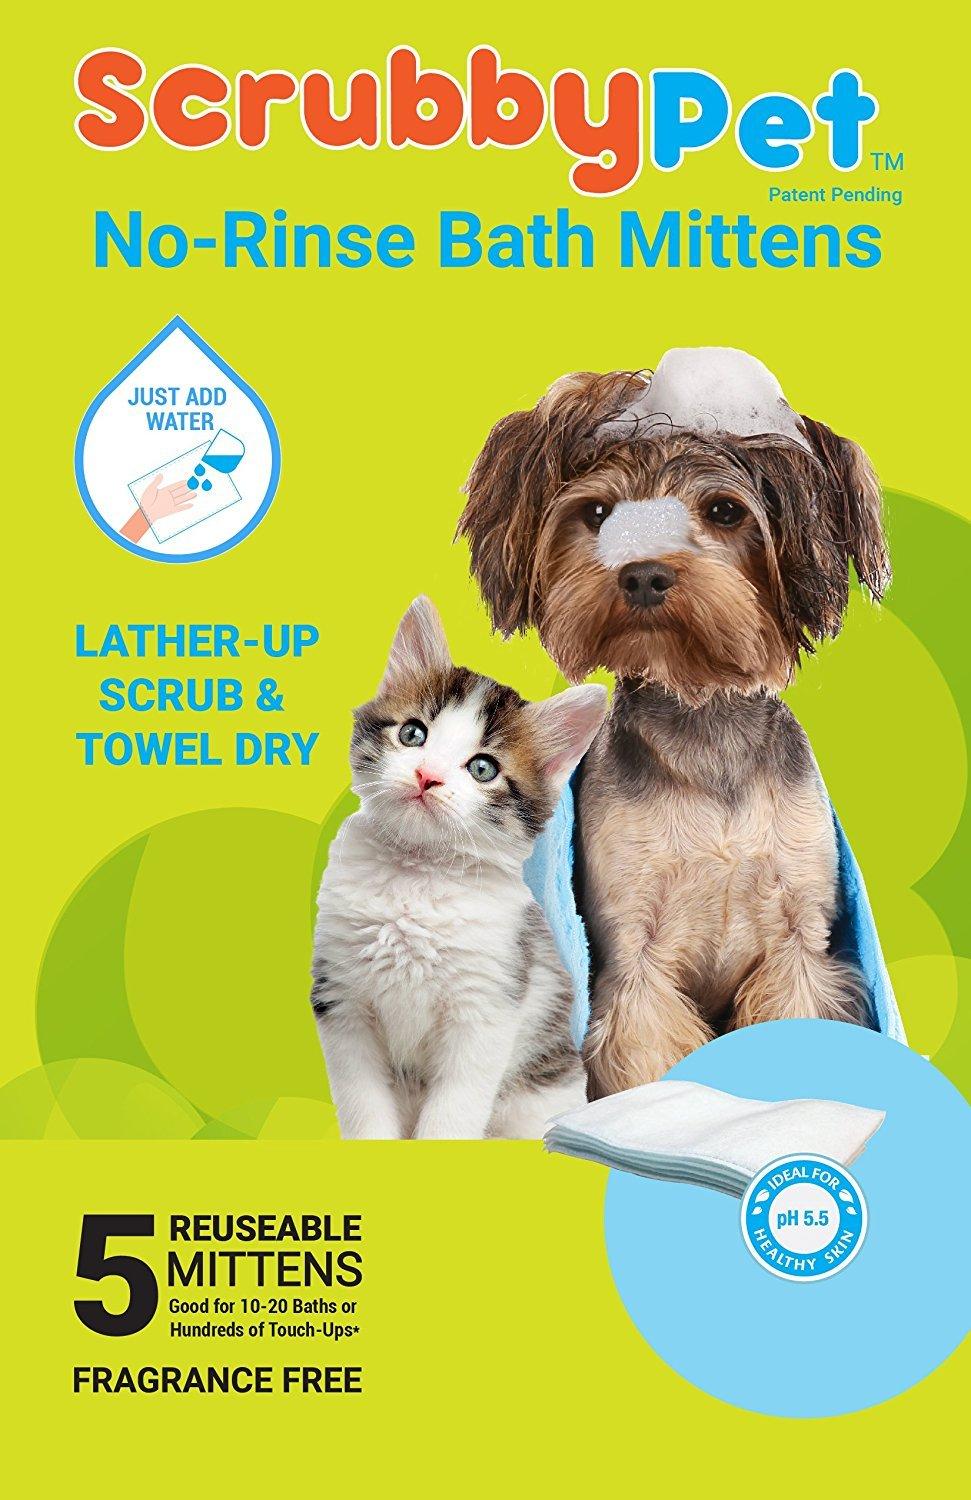 ScrubbyPet No Rinse Pet Wipes- Use Pet Bathing, Pet Grooming Pet Washing, Simple to Use,Just Lather, Wipe, Dry. Excellent Sensitive Skin. The Ideal Pet Wipes Bathing Your Pet Dog Cat.